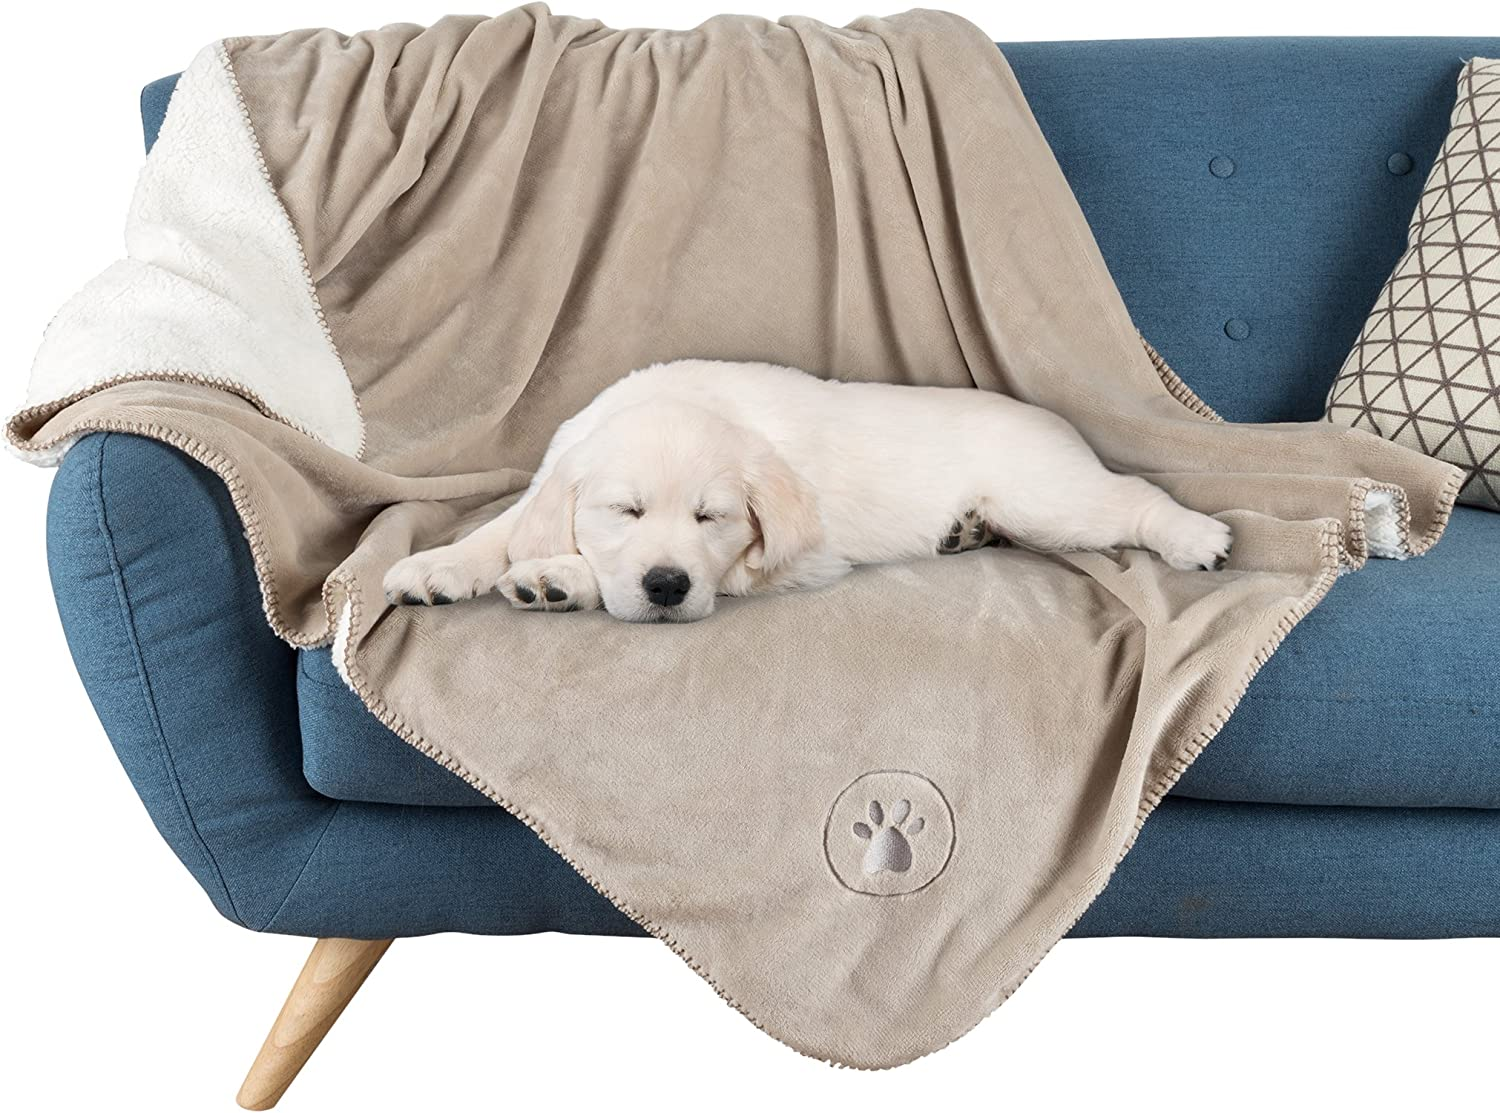 """Amazon.com : PETMAKER Waterproof Pet Blanket-50""""x60"""" Soft Plush Throw  Protects Couch, Chairs, Car, or Bed from Spills, Stains, or Pet Fur-Machine  Washable by Petmaker (Tan), Model Number: 80-PET6076 : Pet Supplies"""